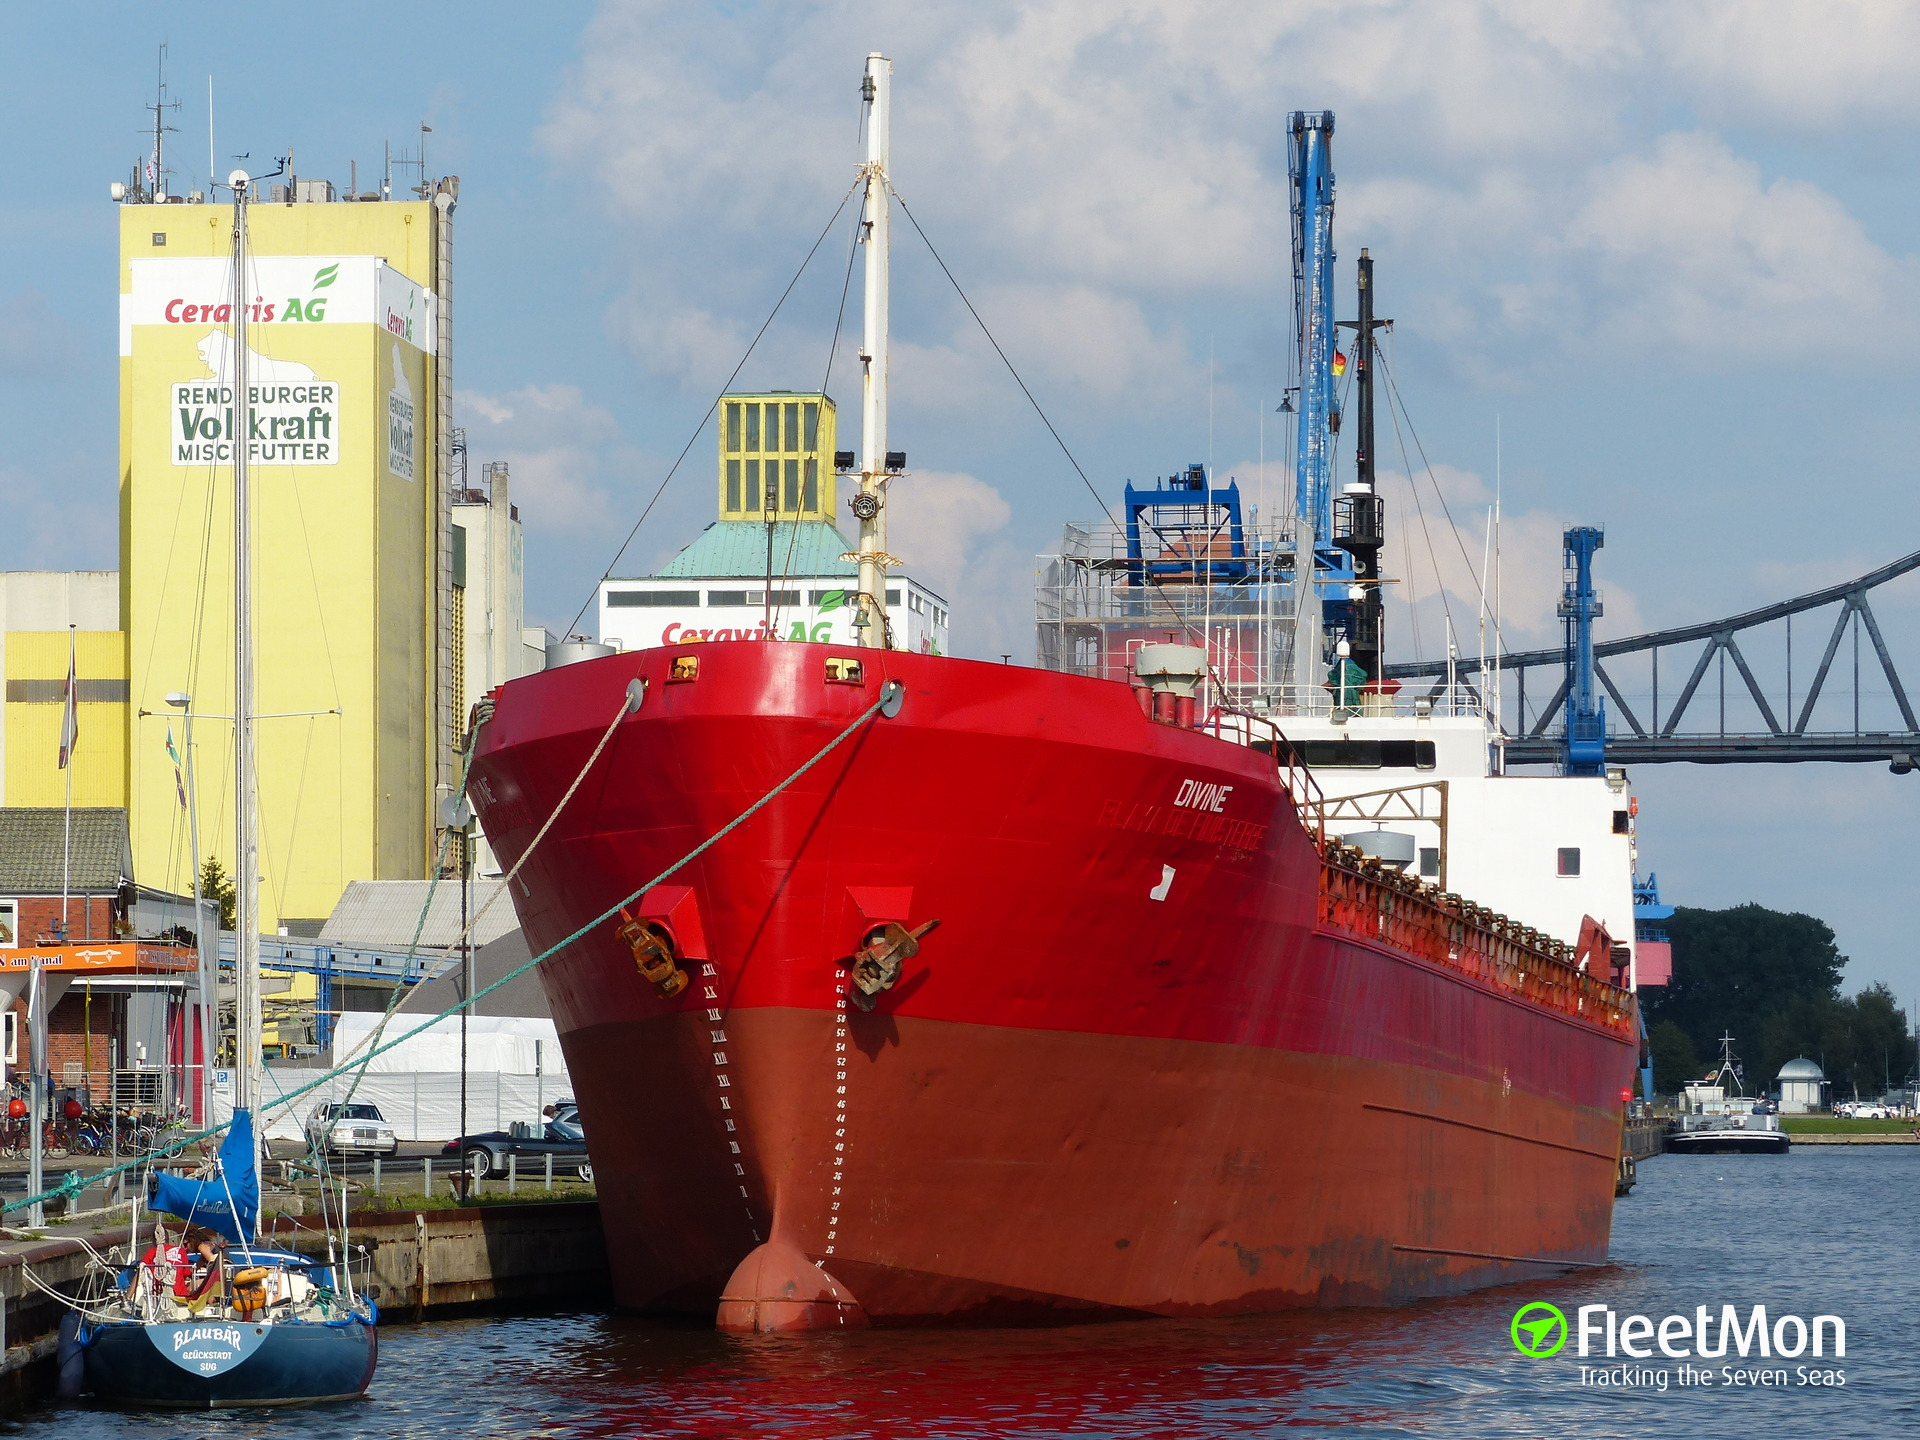 General cargo vessel Gold listing